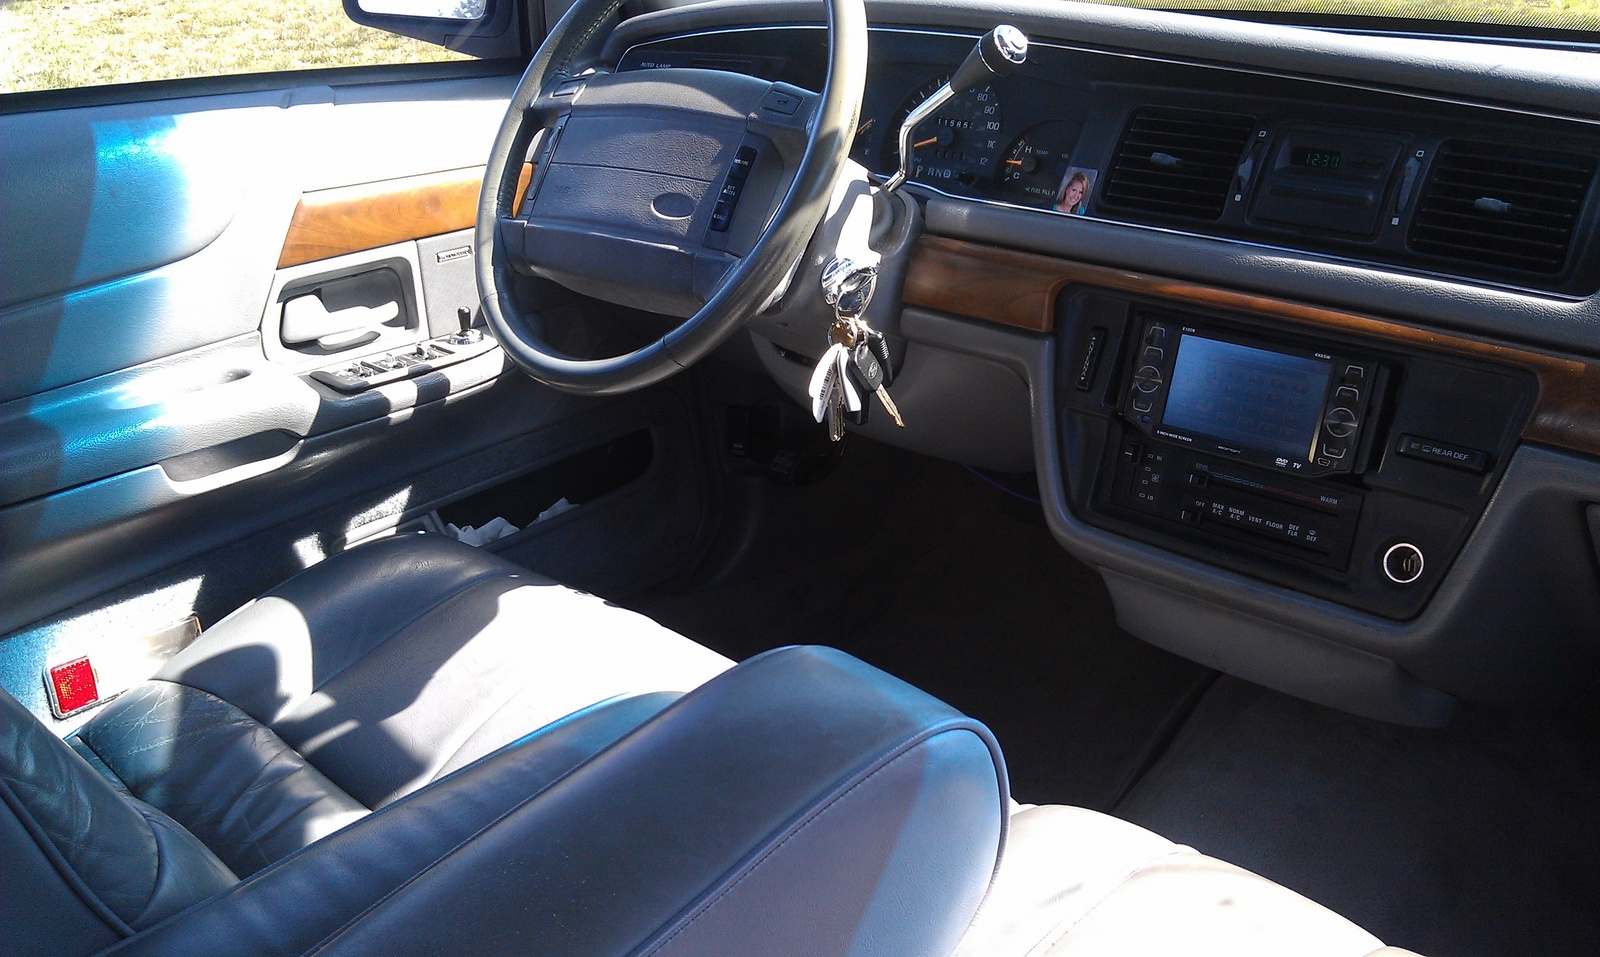 1993 ford crown victoria interior pictures cargurus. Black Bedroom Furniture Sets. Home Design Ideas